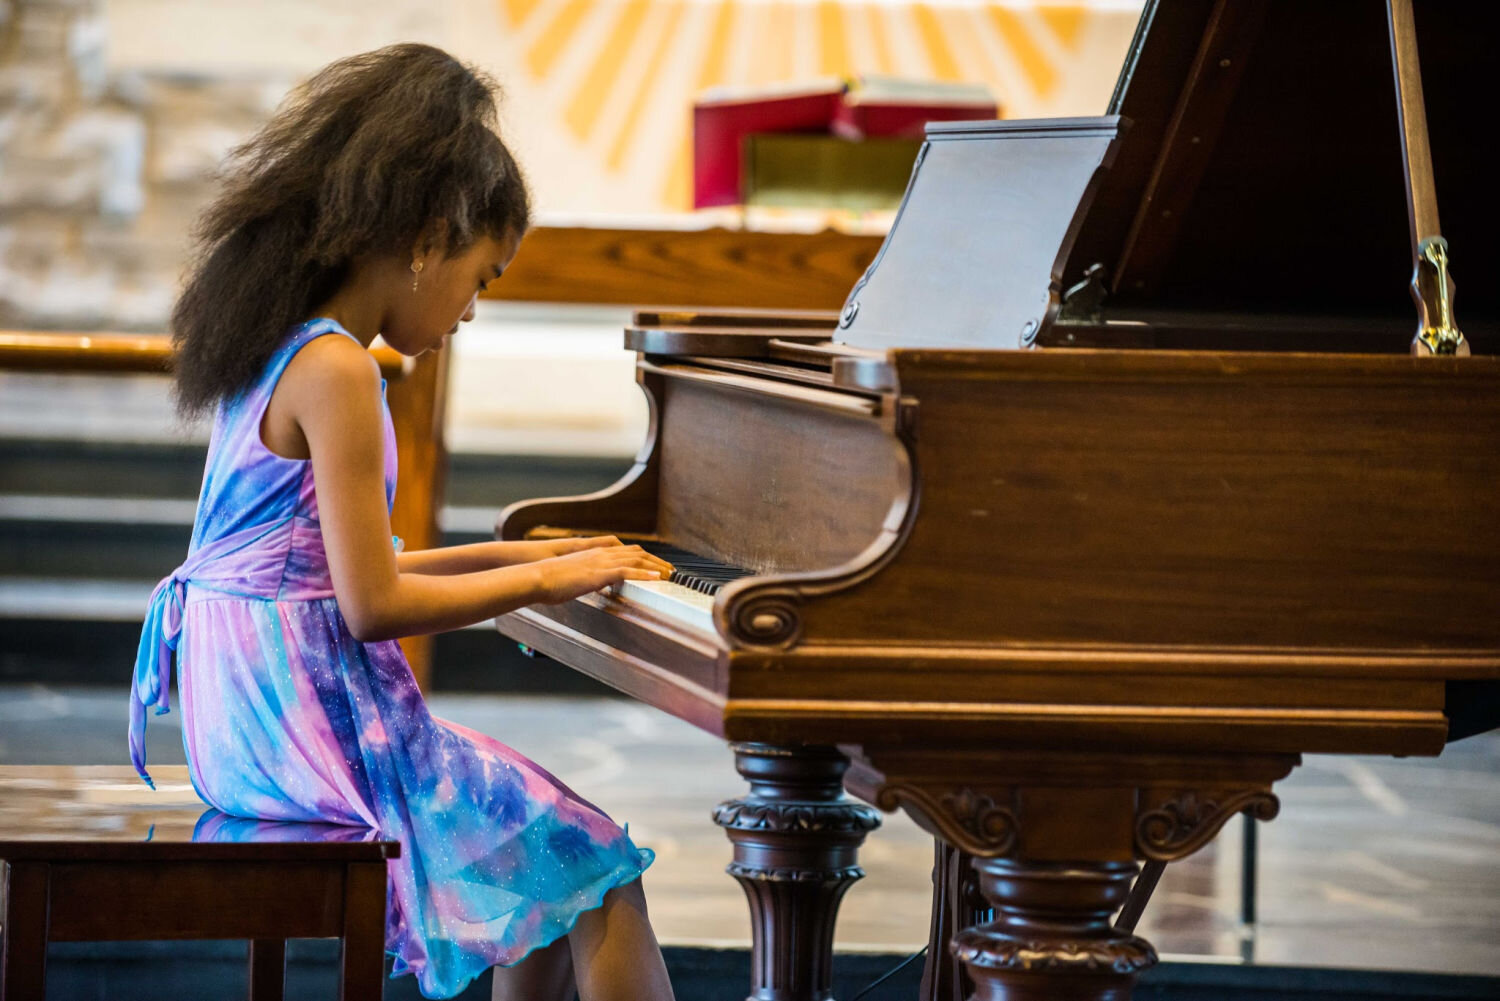 Piano Lessons   in Mendota Heights   for beginner, intermediate, and advanced students of all ages   CALL 651-263-9475 TO SCHEDULE YOUR FIRST LESSON   REQUEST INFO